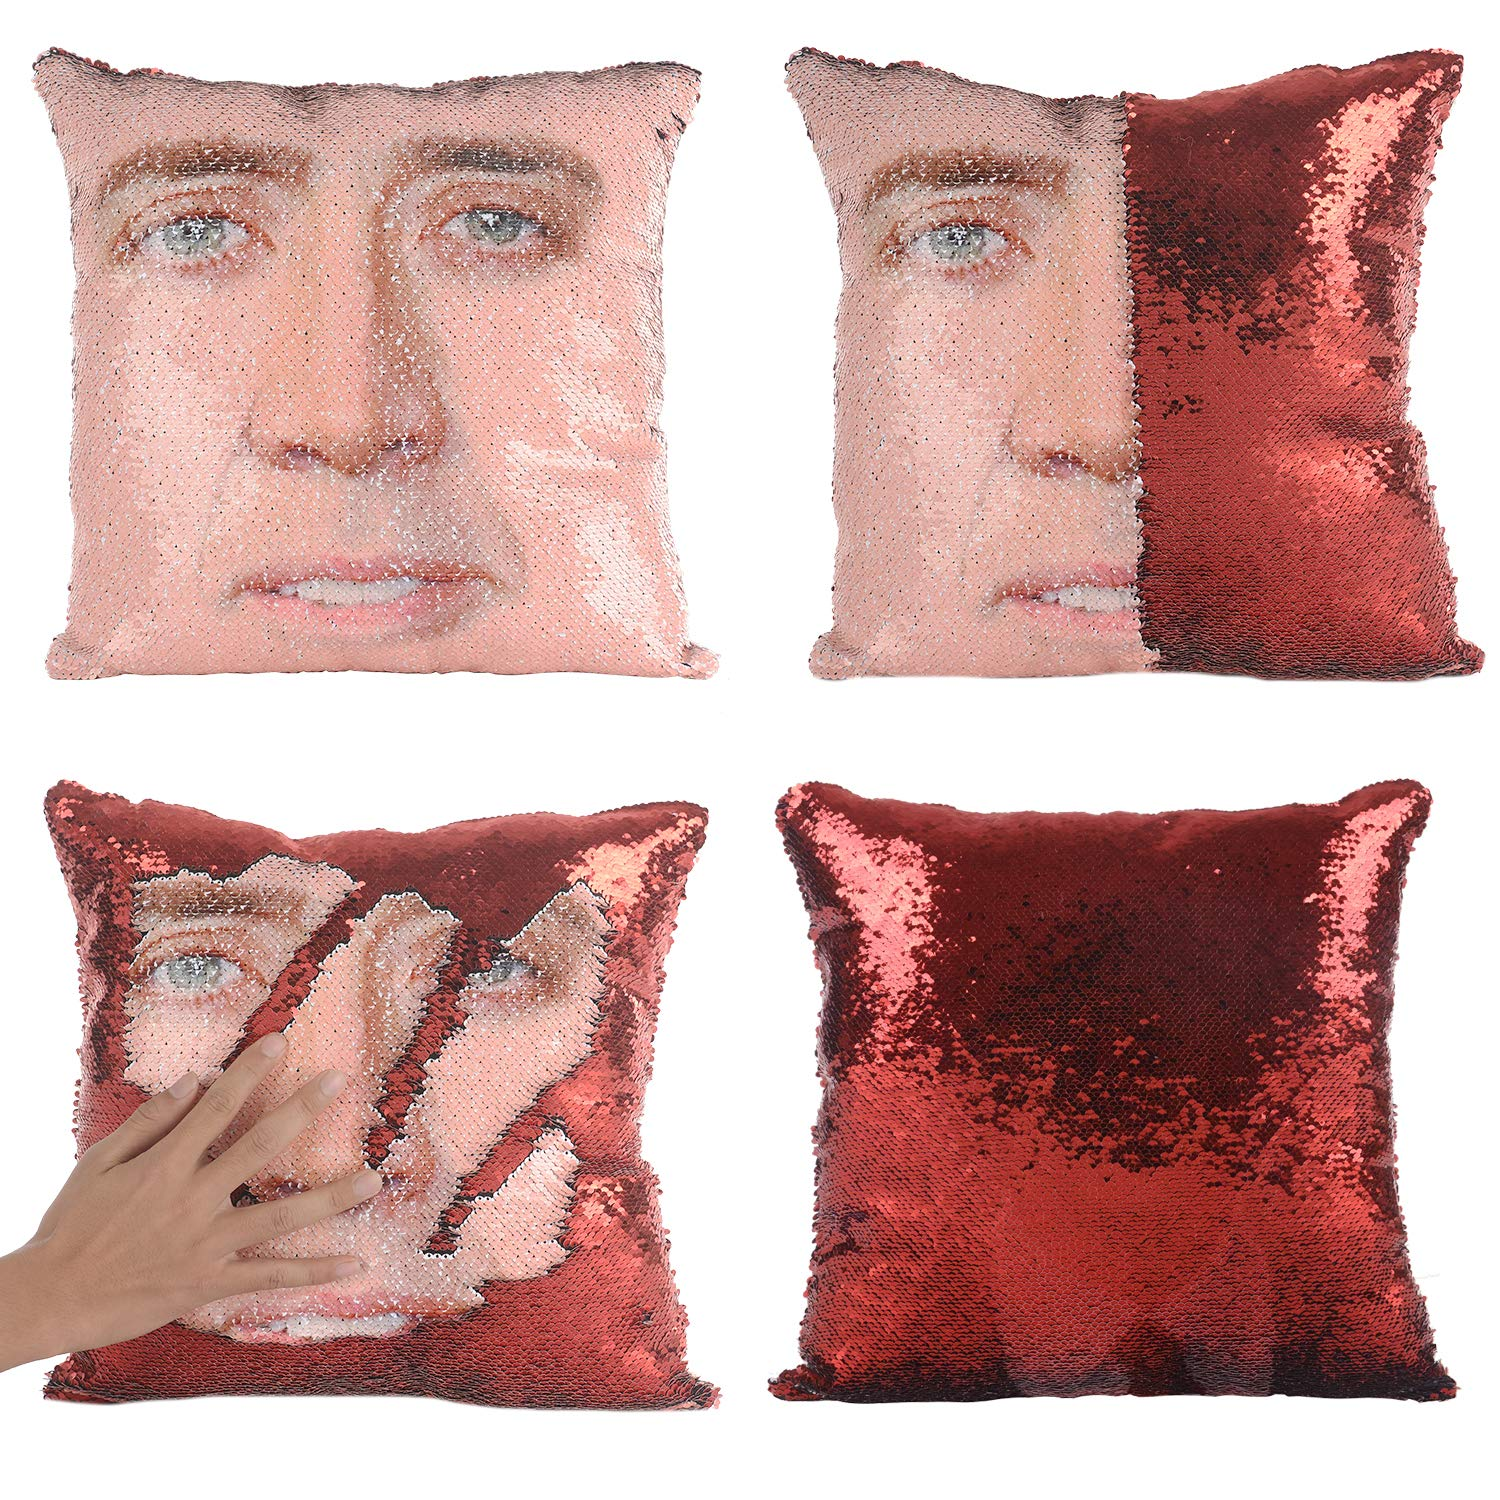 Merrycolor Mermaid Pillow Cover, Nicolas Cage Pillow Case Magic Reversible Sequin Pillow Cover Decorative Throw Cushion Case (Red)